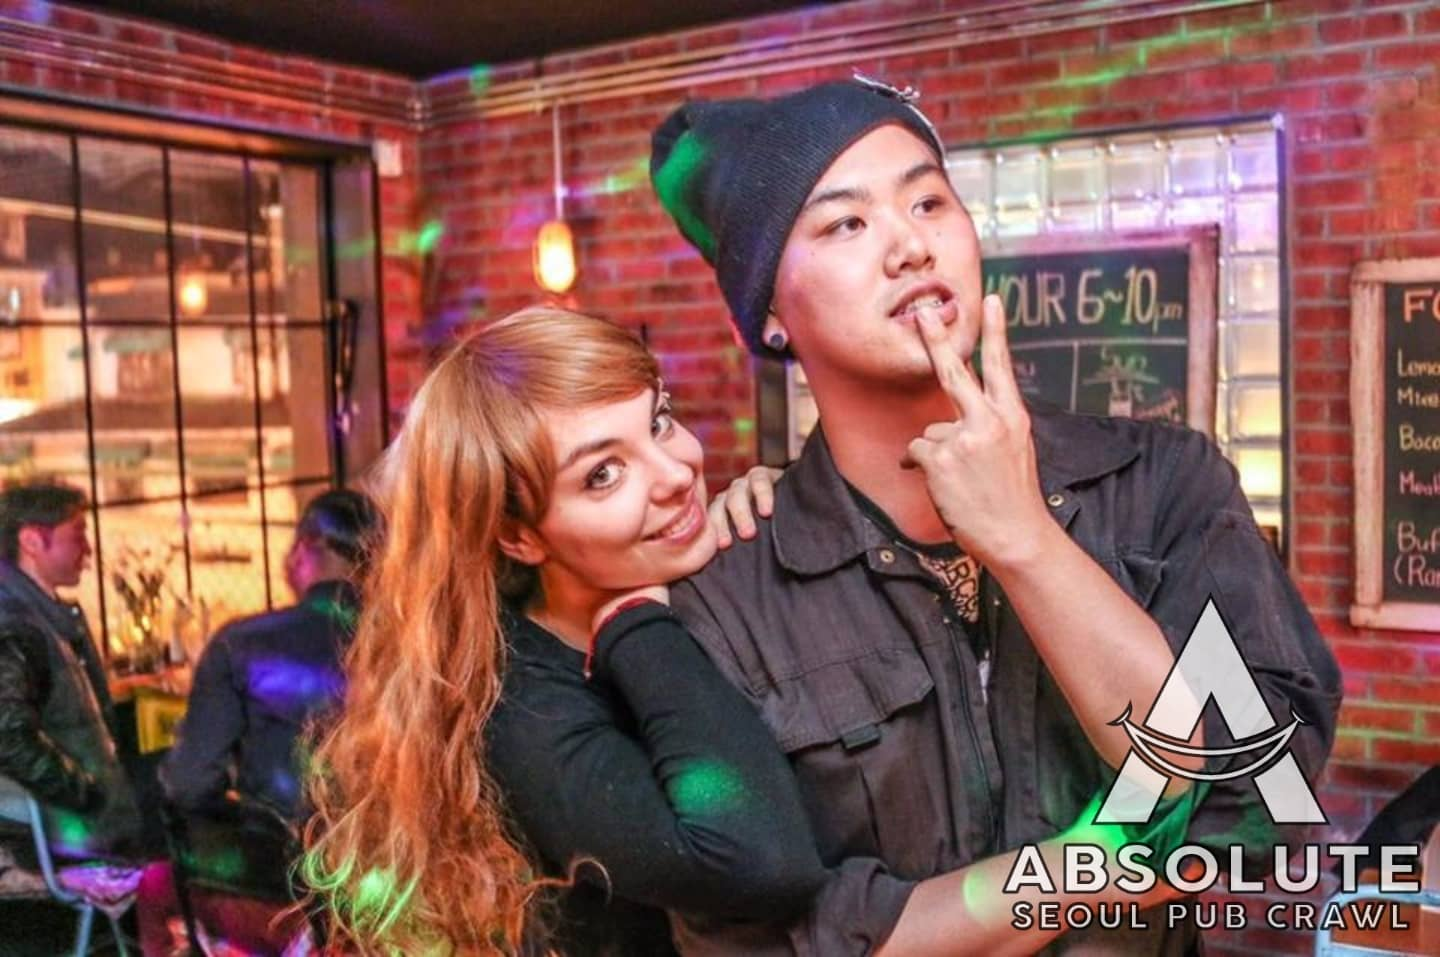 Seoul pub crawl Absolute Korea Hongdae Itaewon Gangnam International Party bar hopping crawlers tour